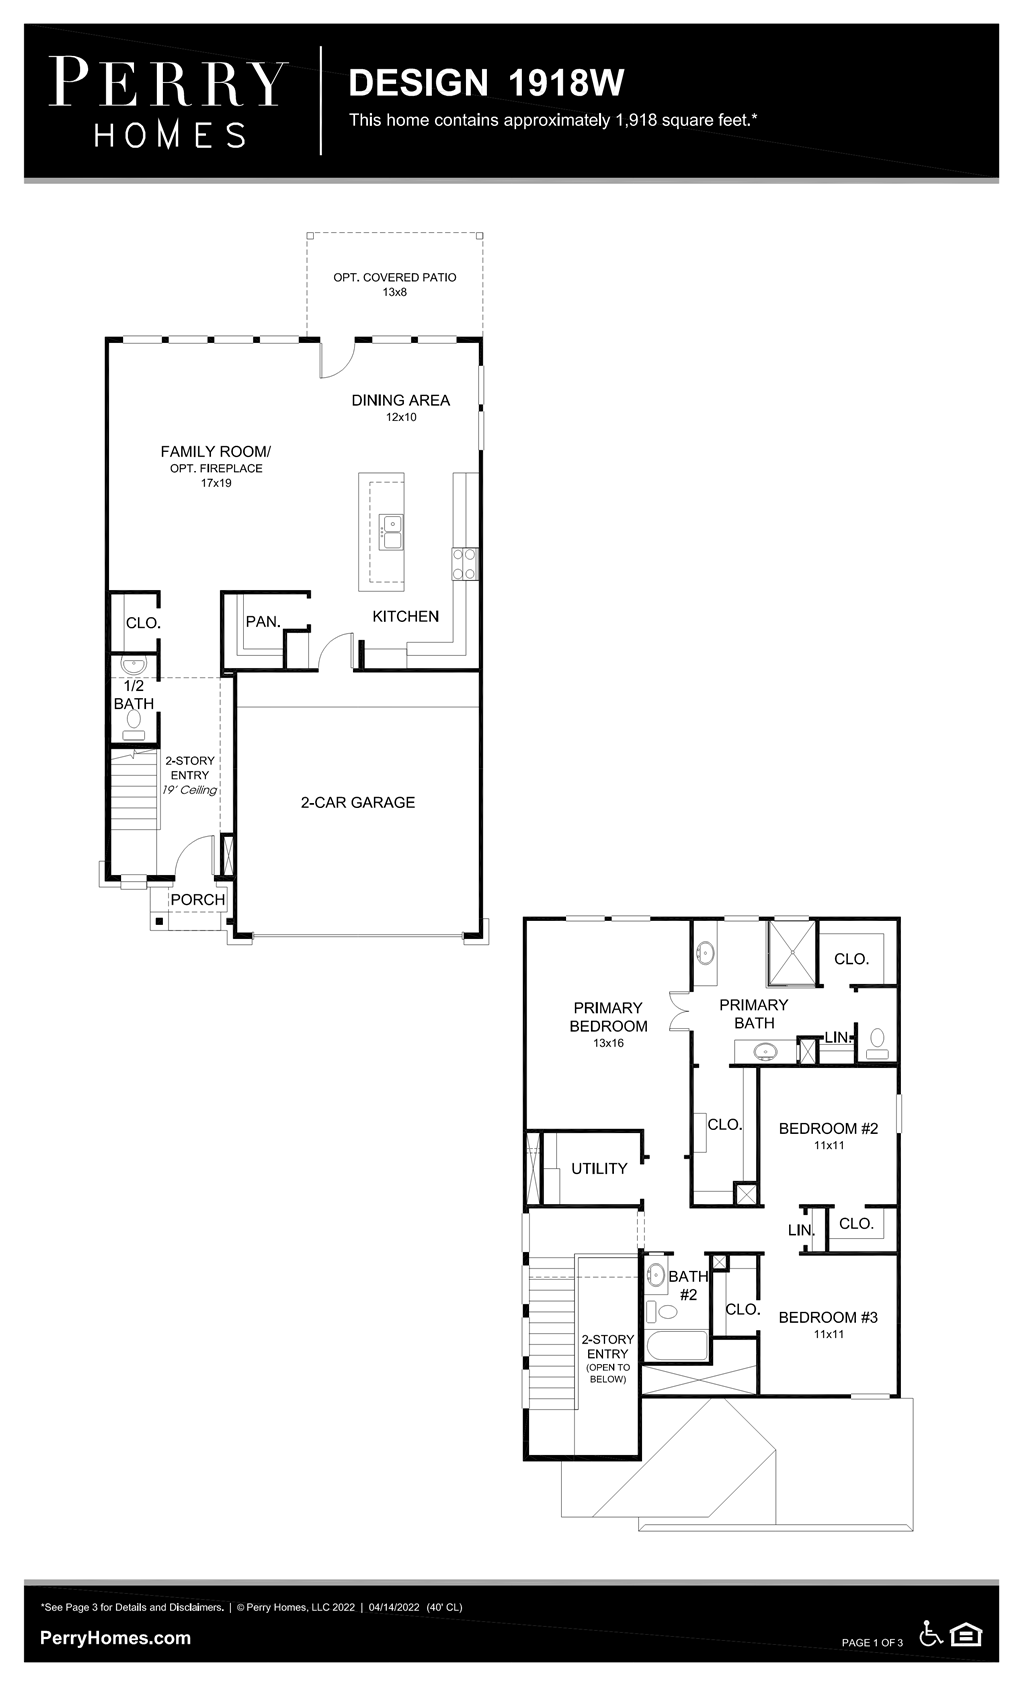 Floor Plan for 1918W